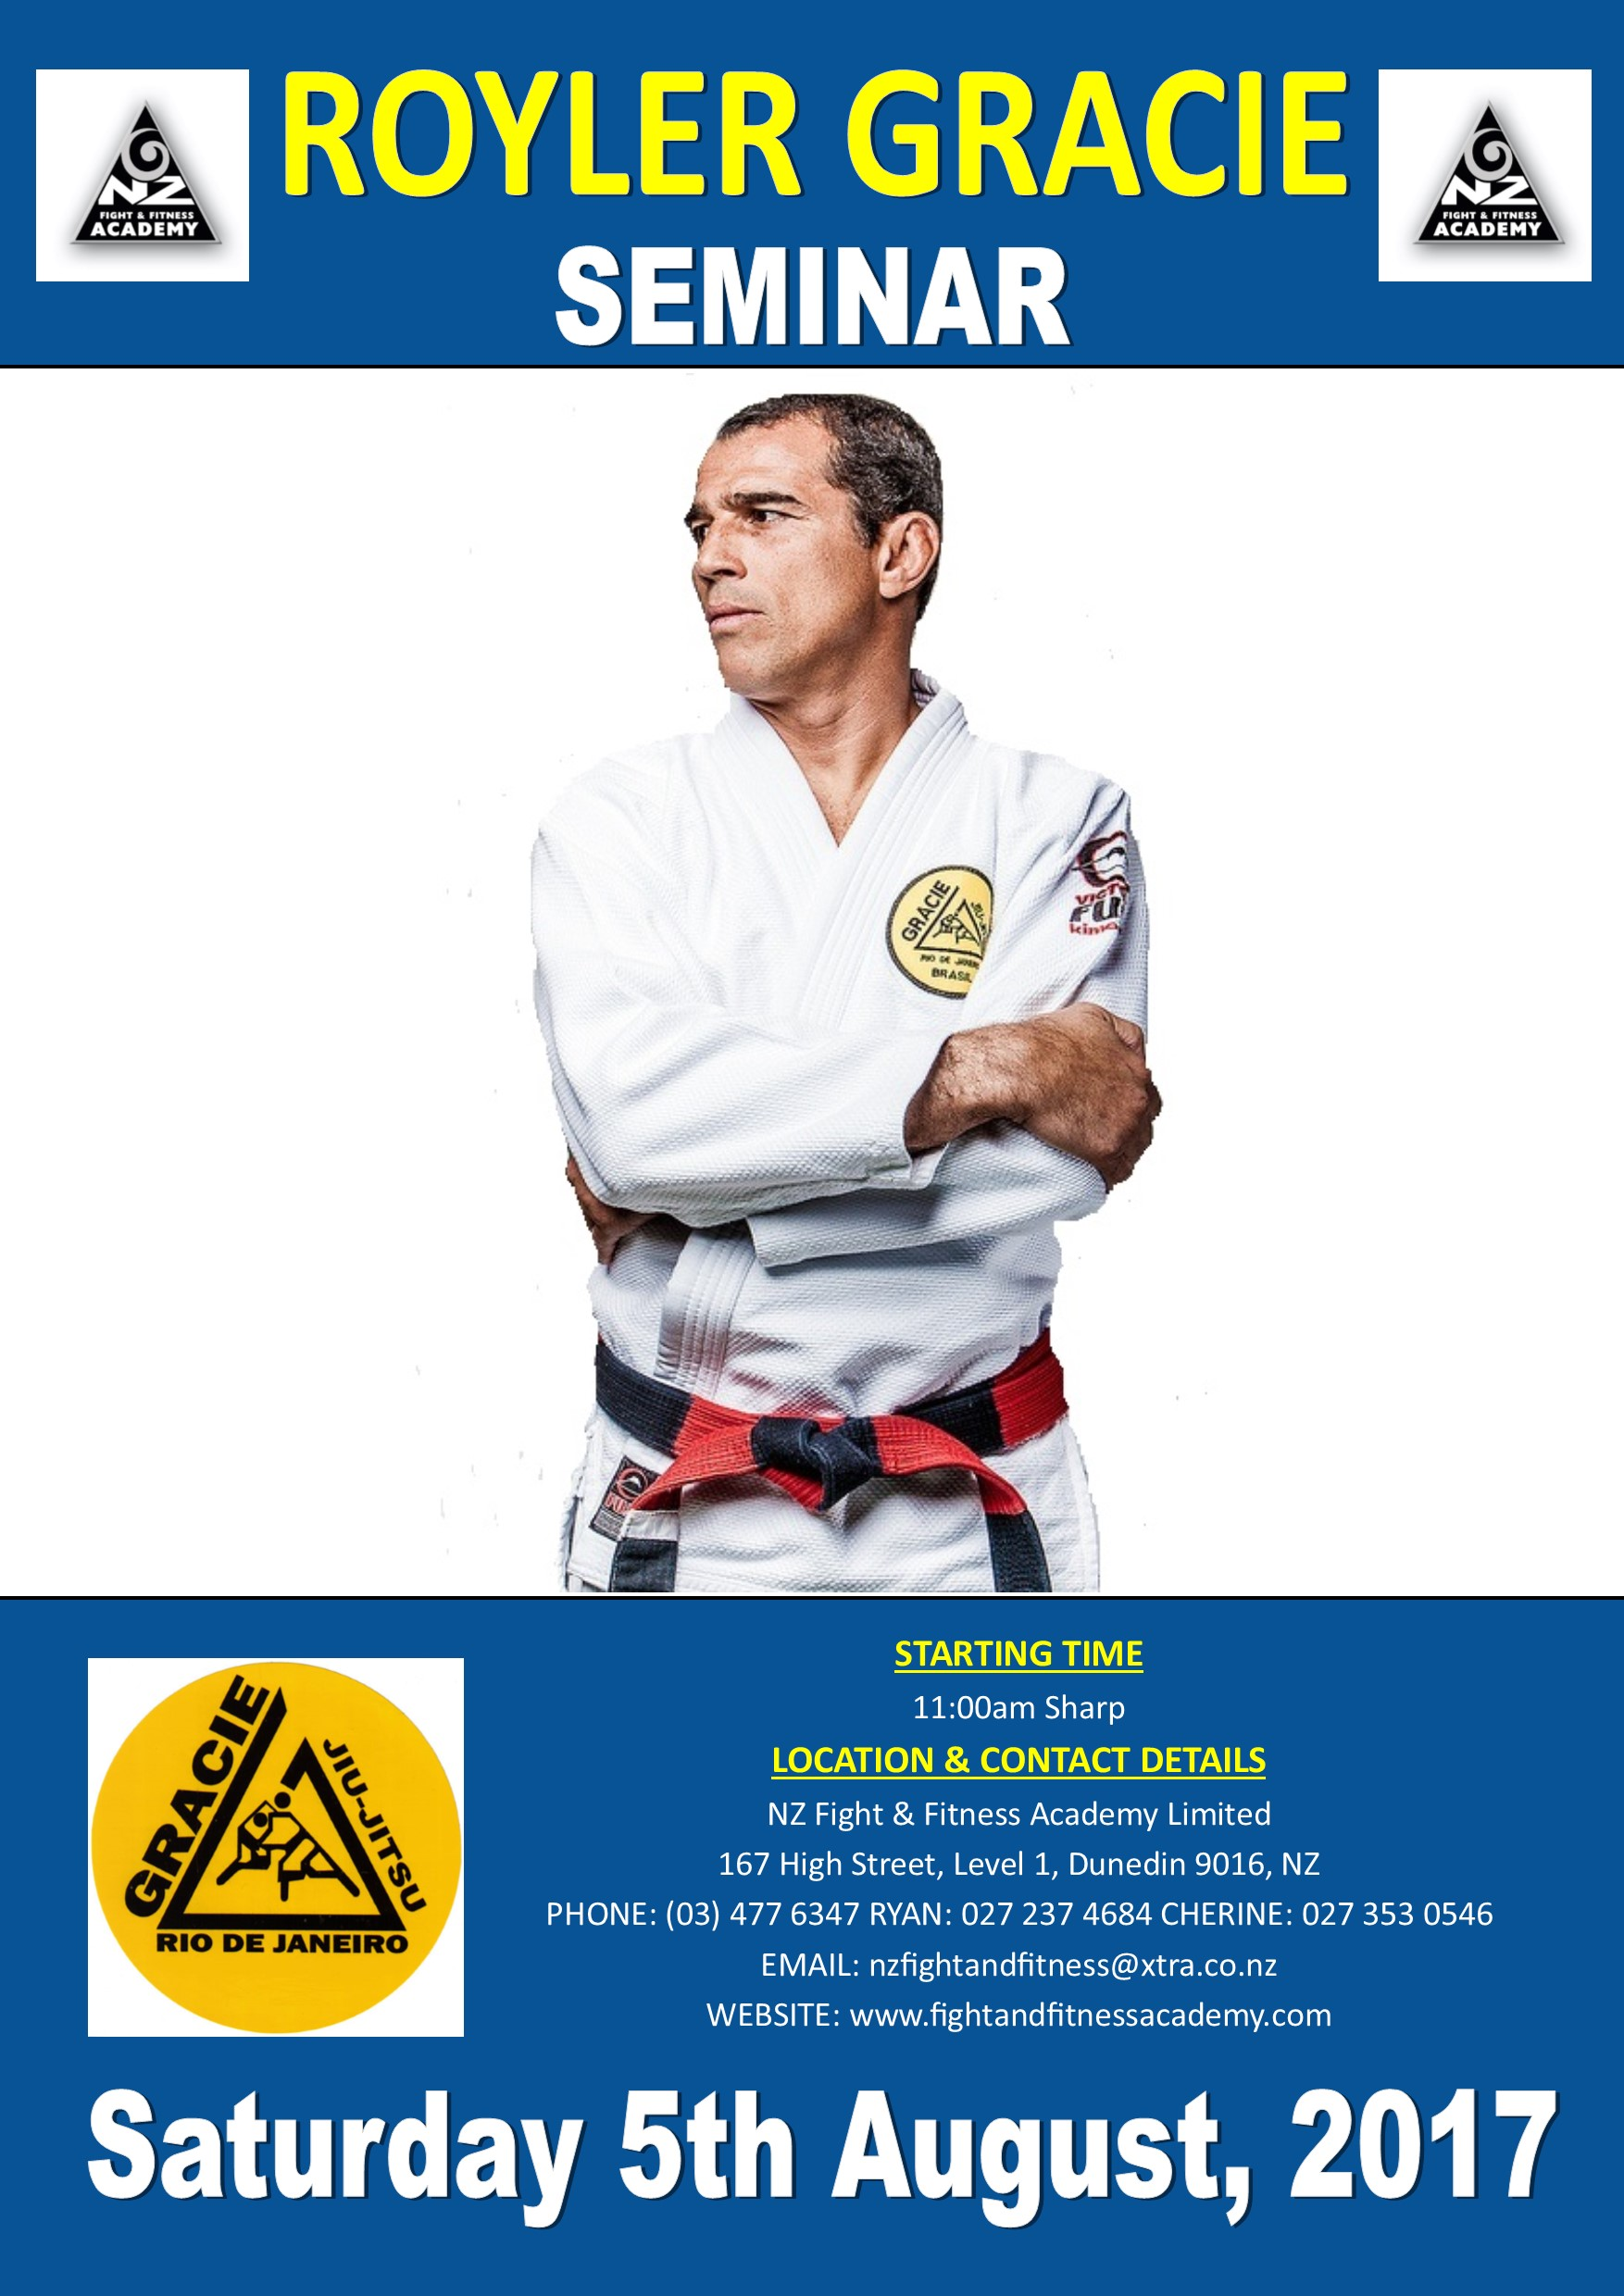 Royler Gracie Seminar - 10 Spots Left | NZ FIGHT & FITNESS